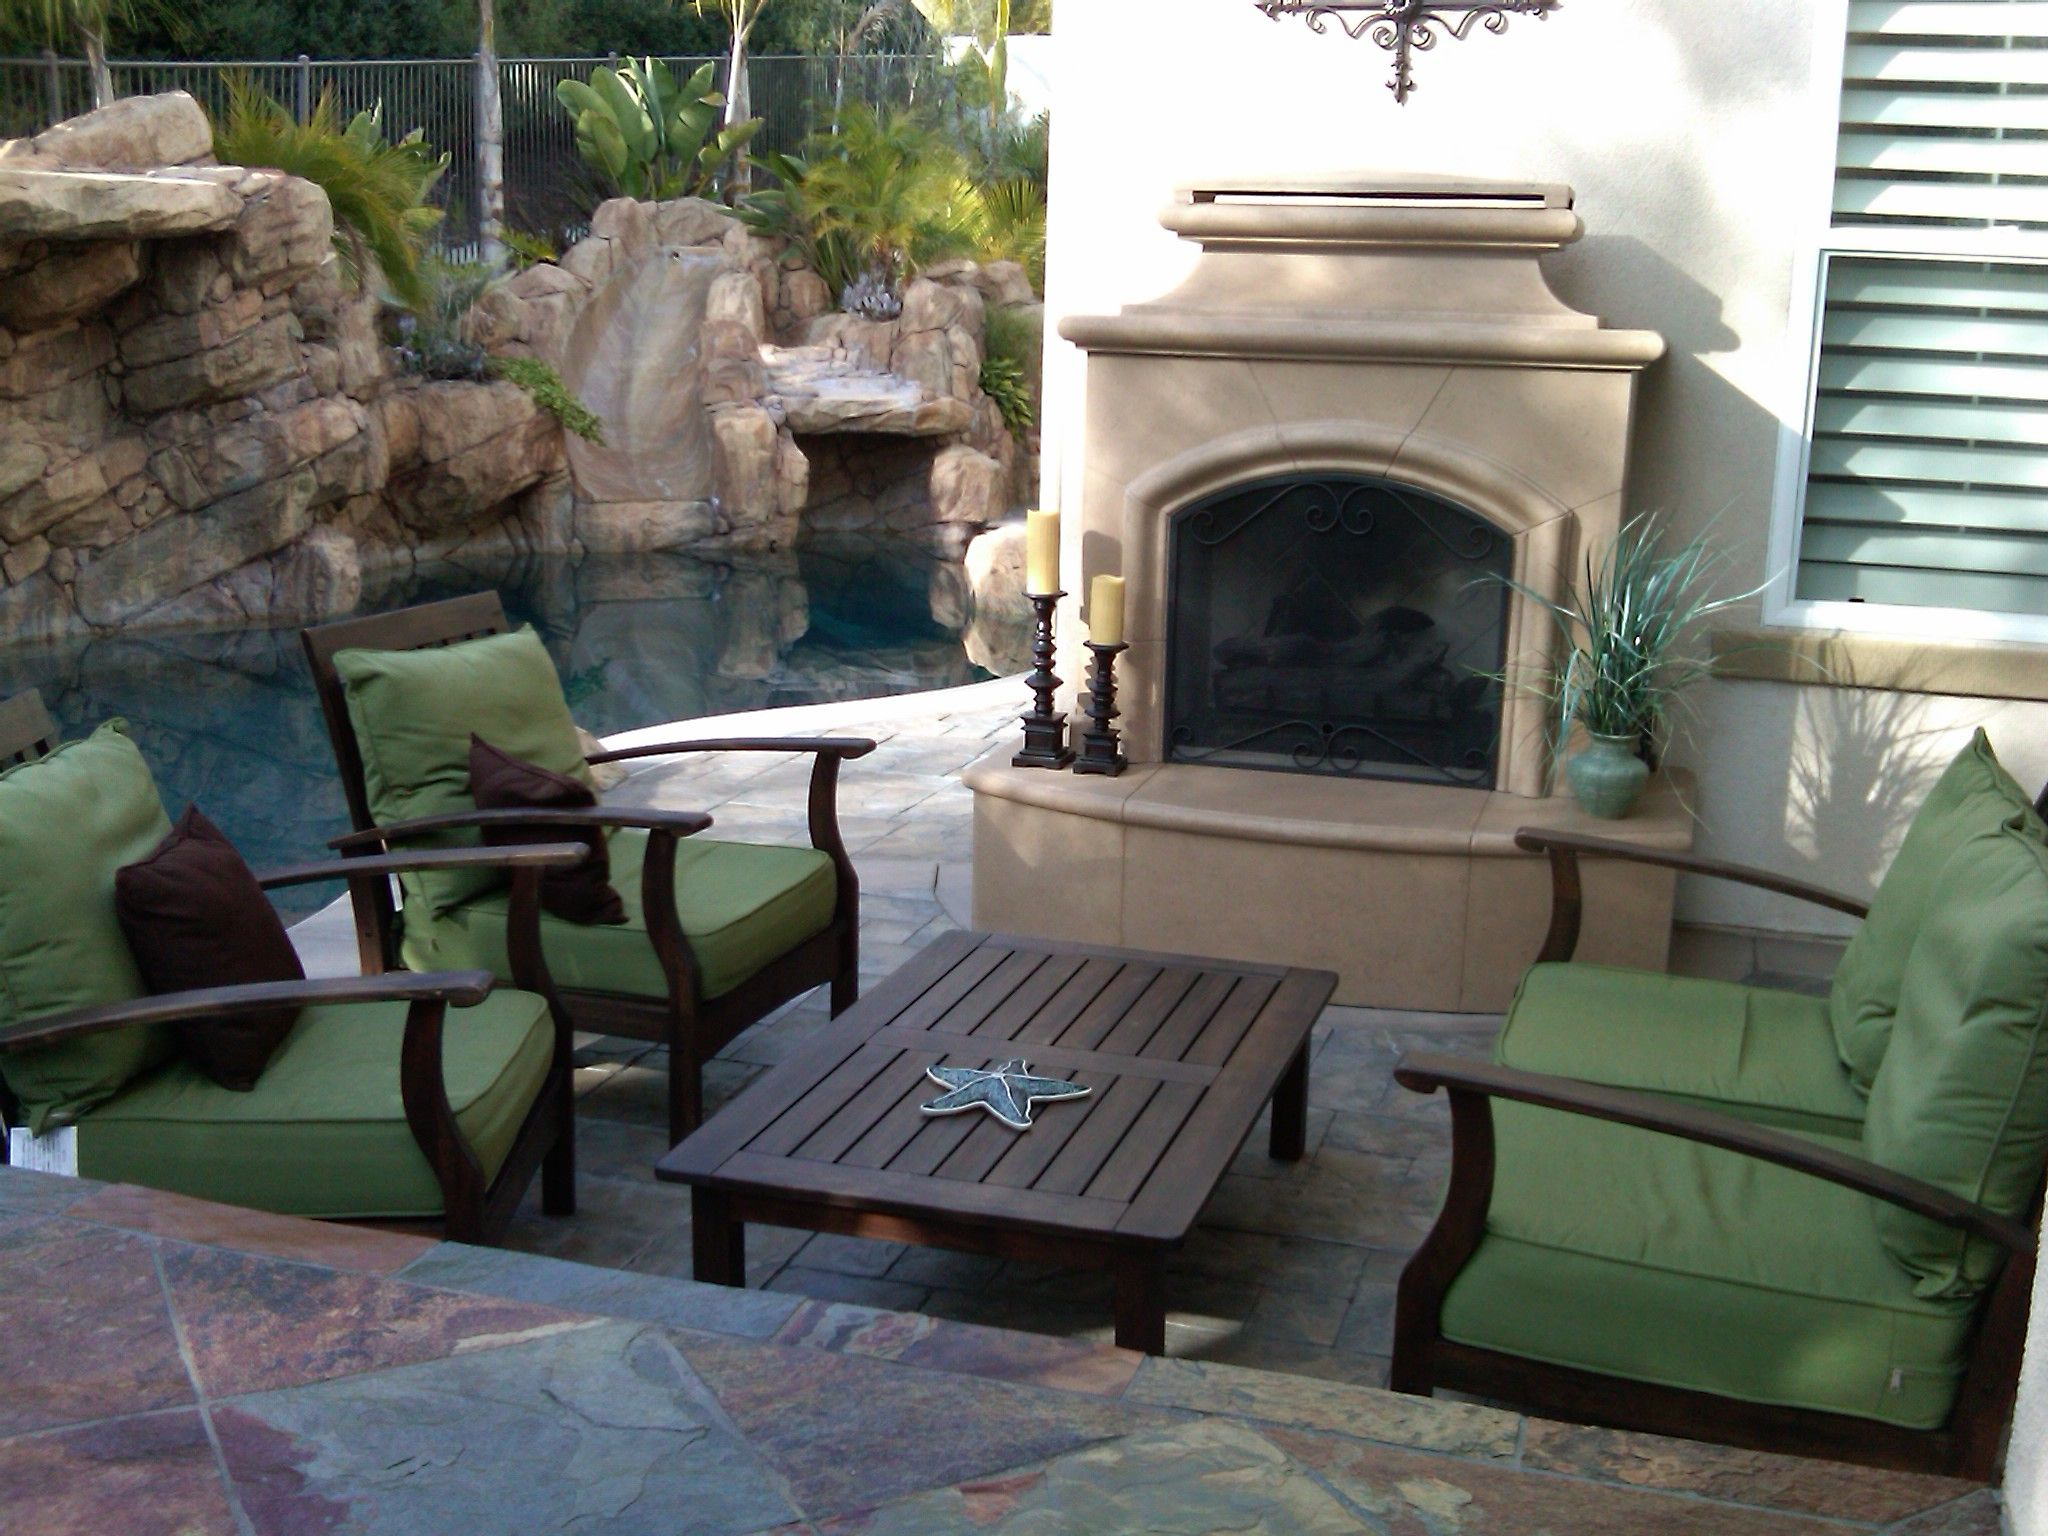 outdoor fireplaces las vegas | ... outdoor fireplace grand phoenix outdoor fireplace cordova outdoor